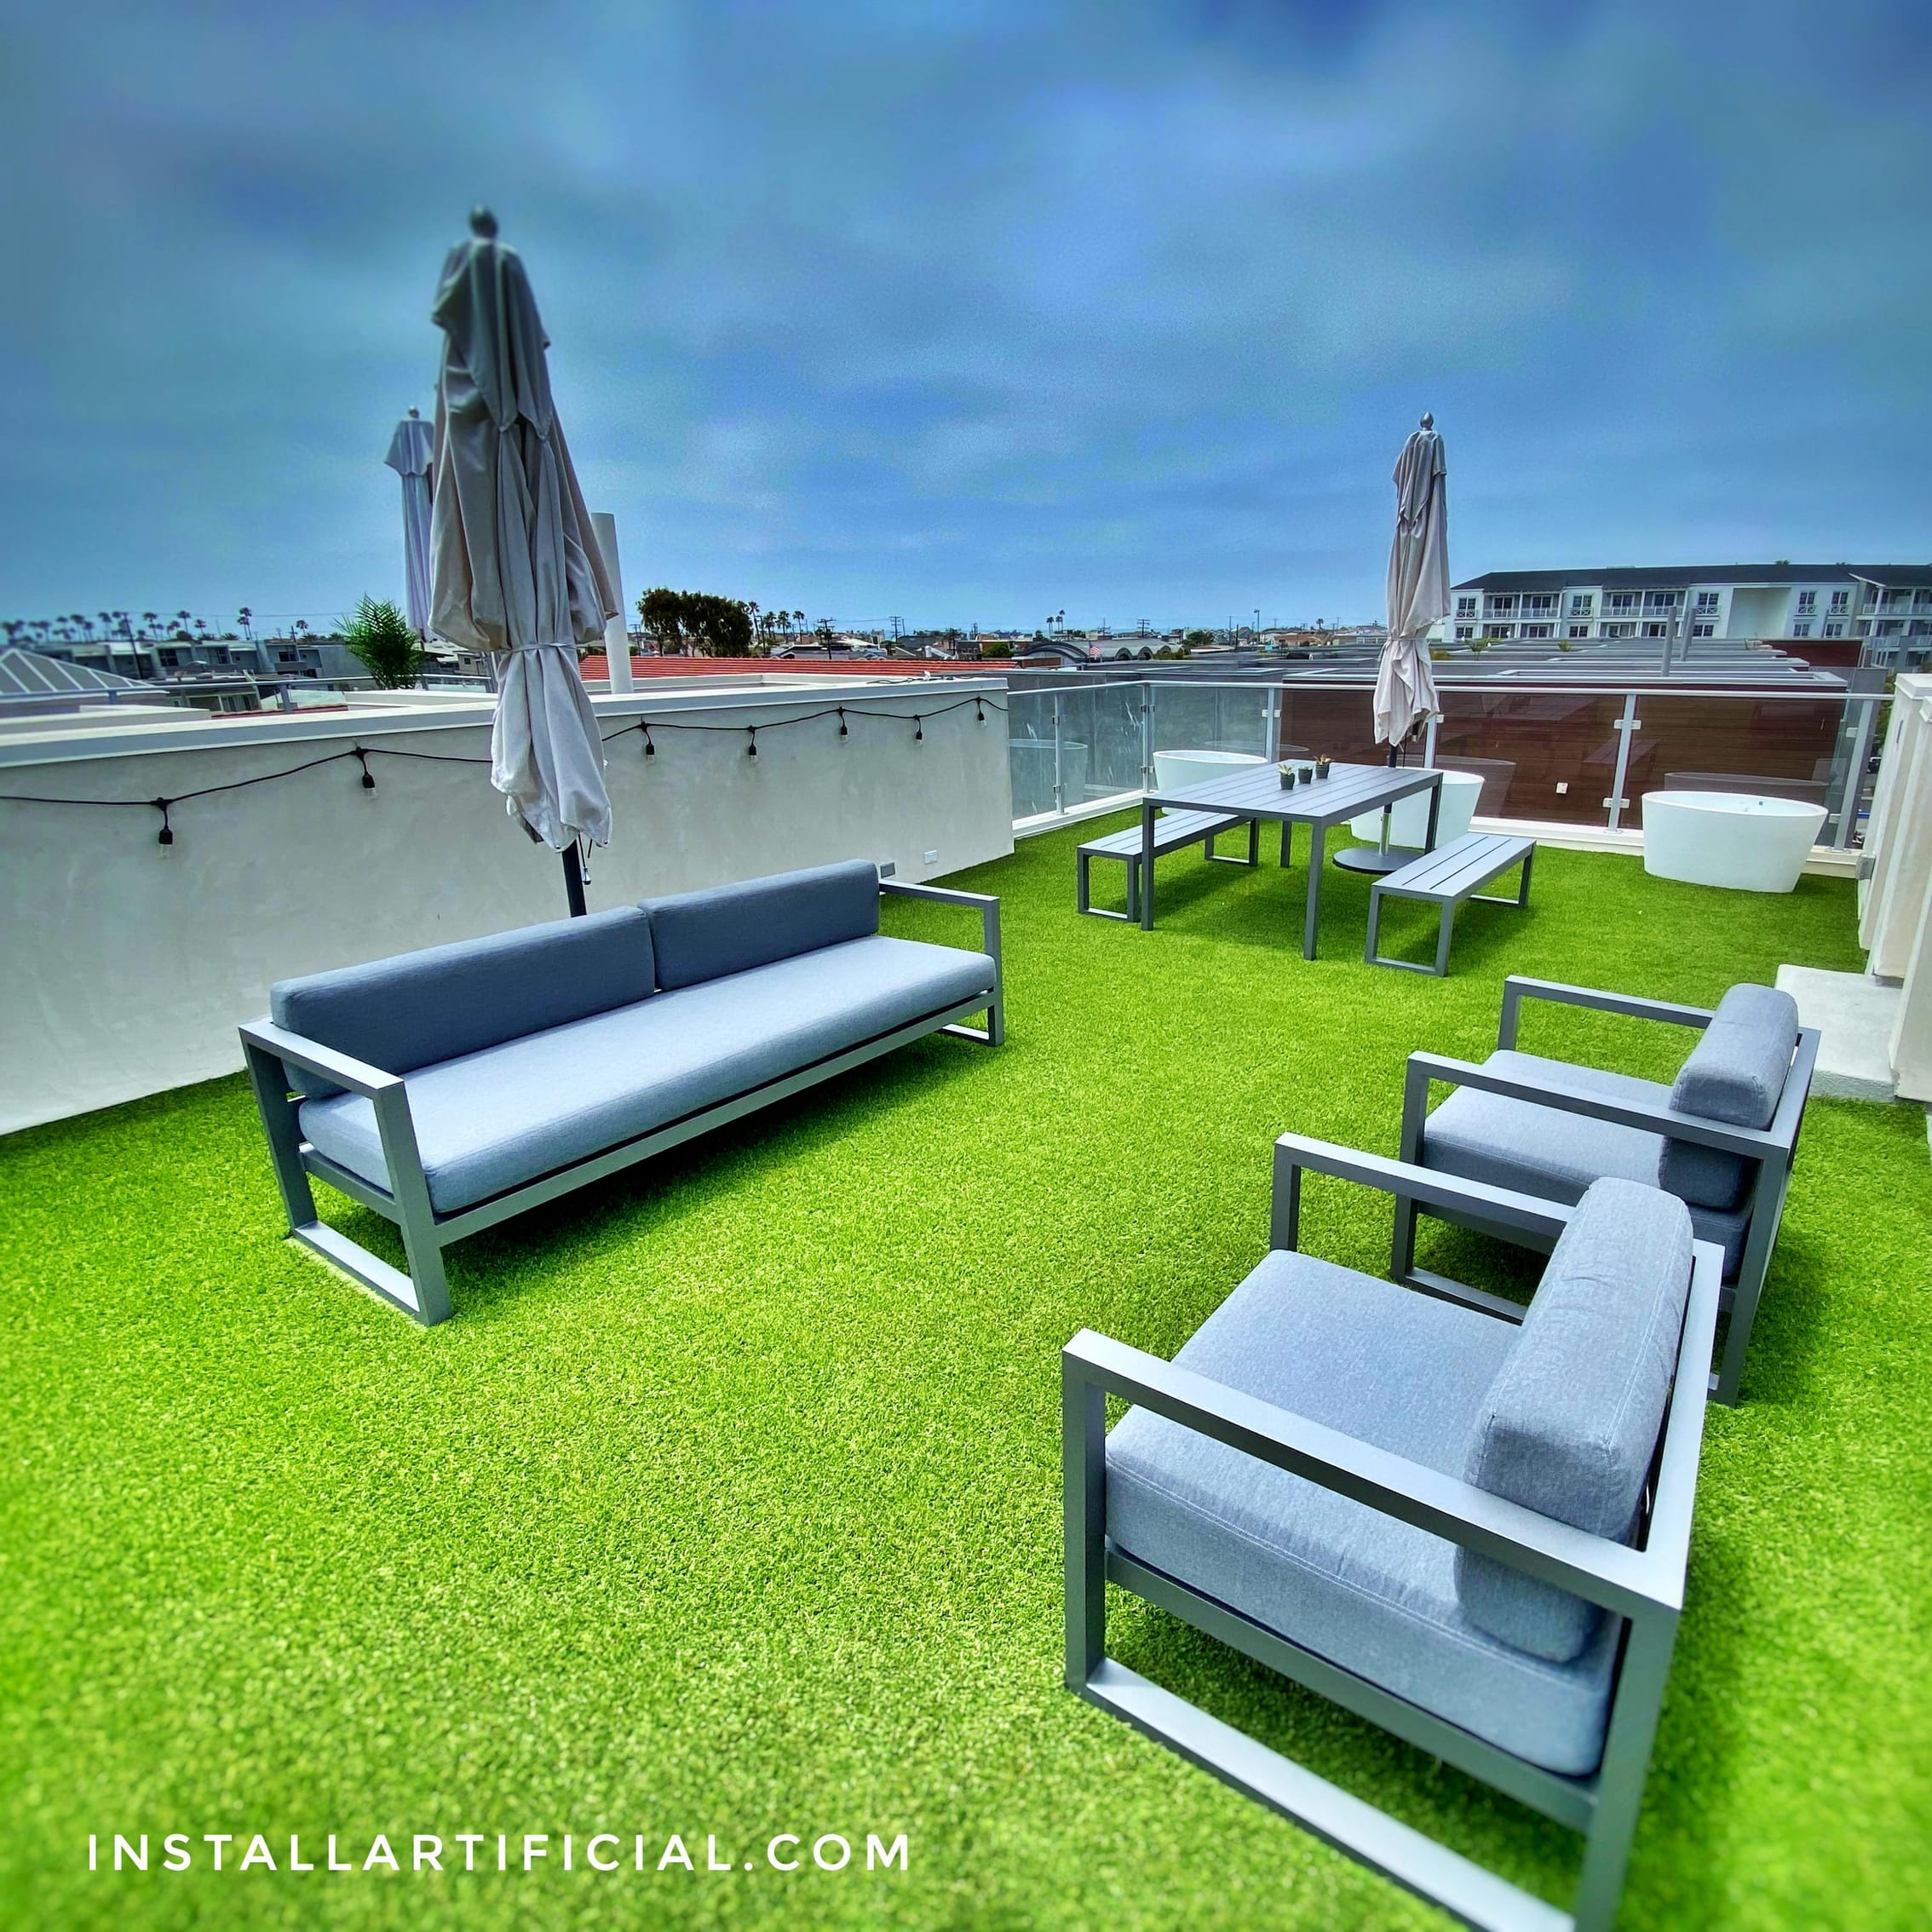 Converted rooftop into patio with artificial grass, residential-1